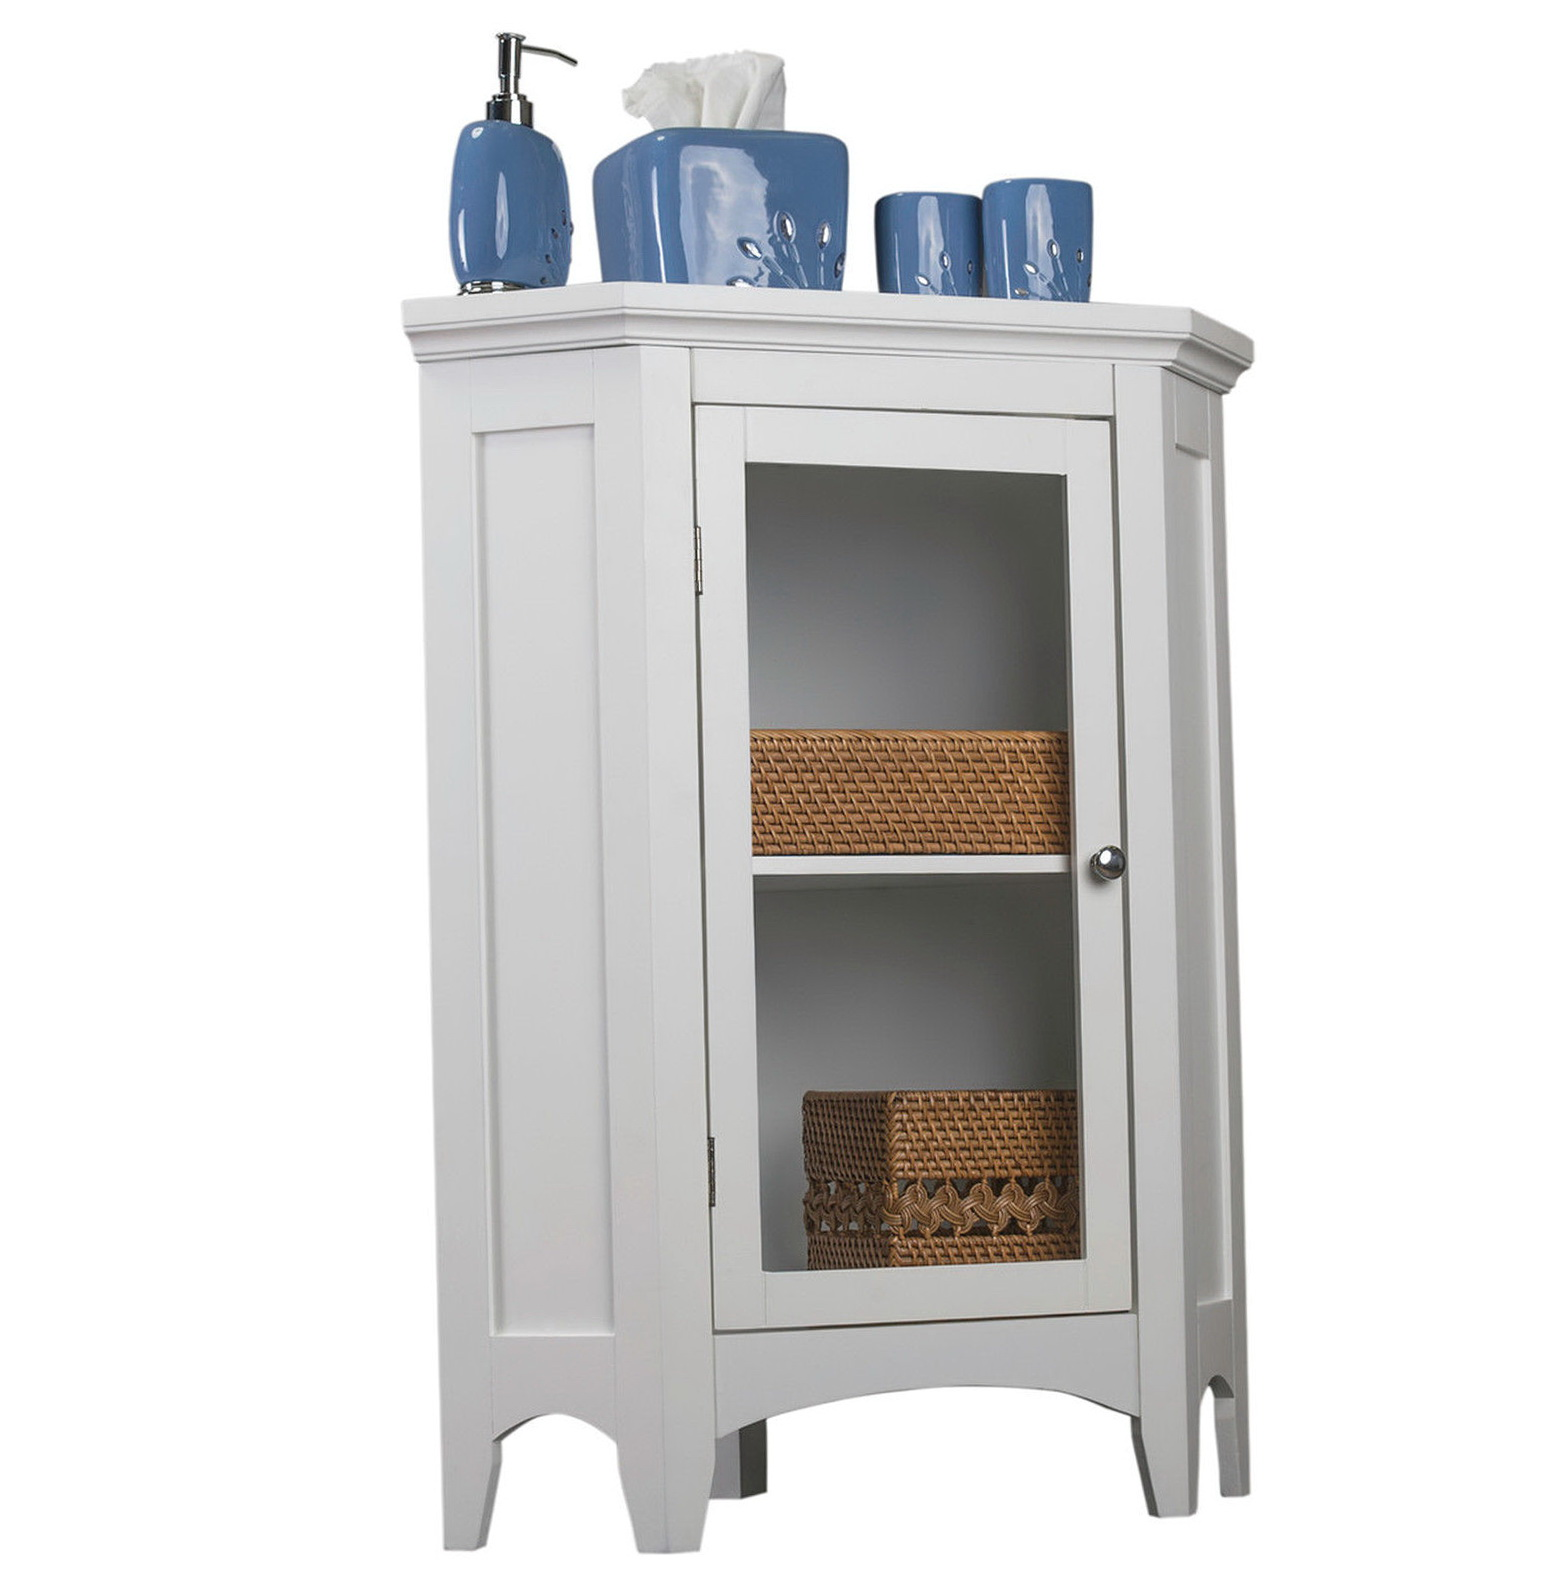 Bathroom Corner Cabinet Storage